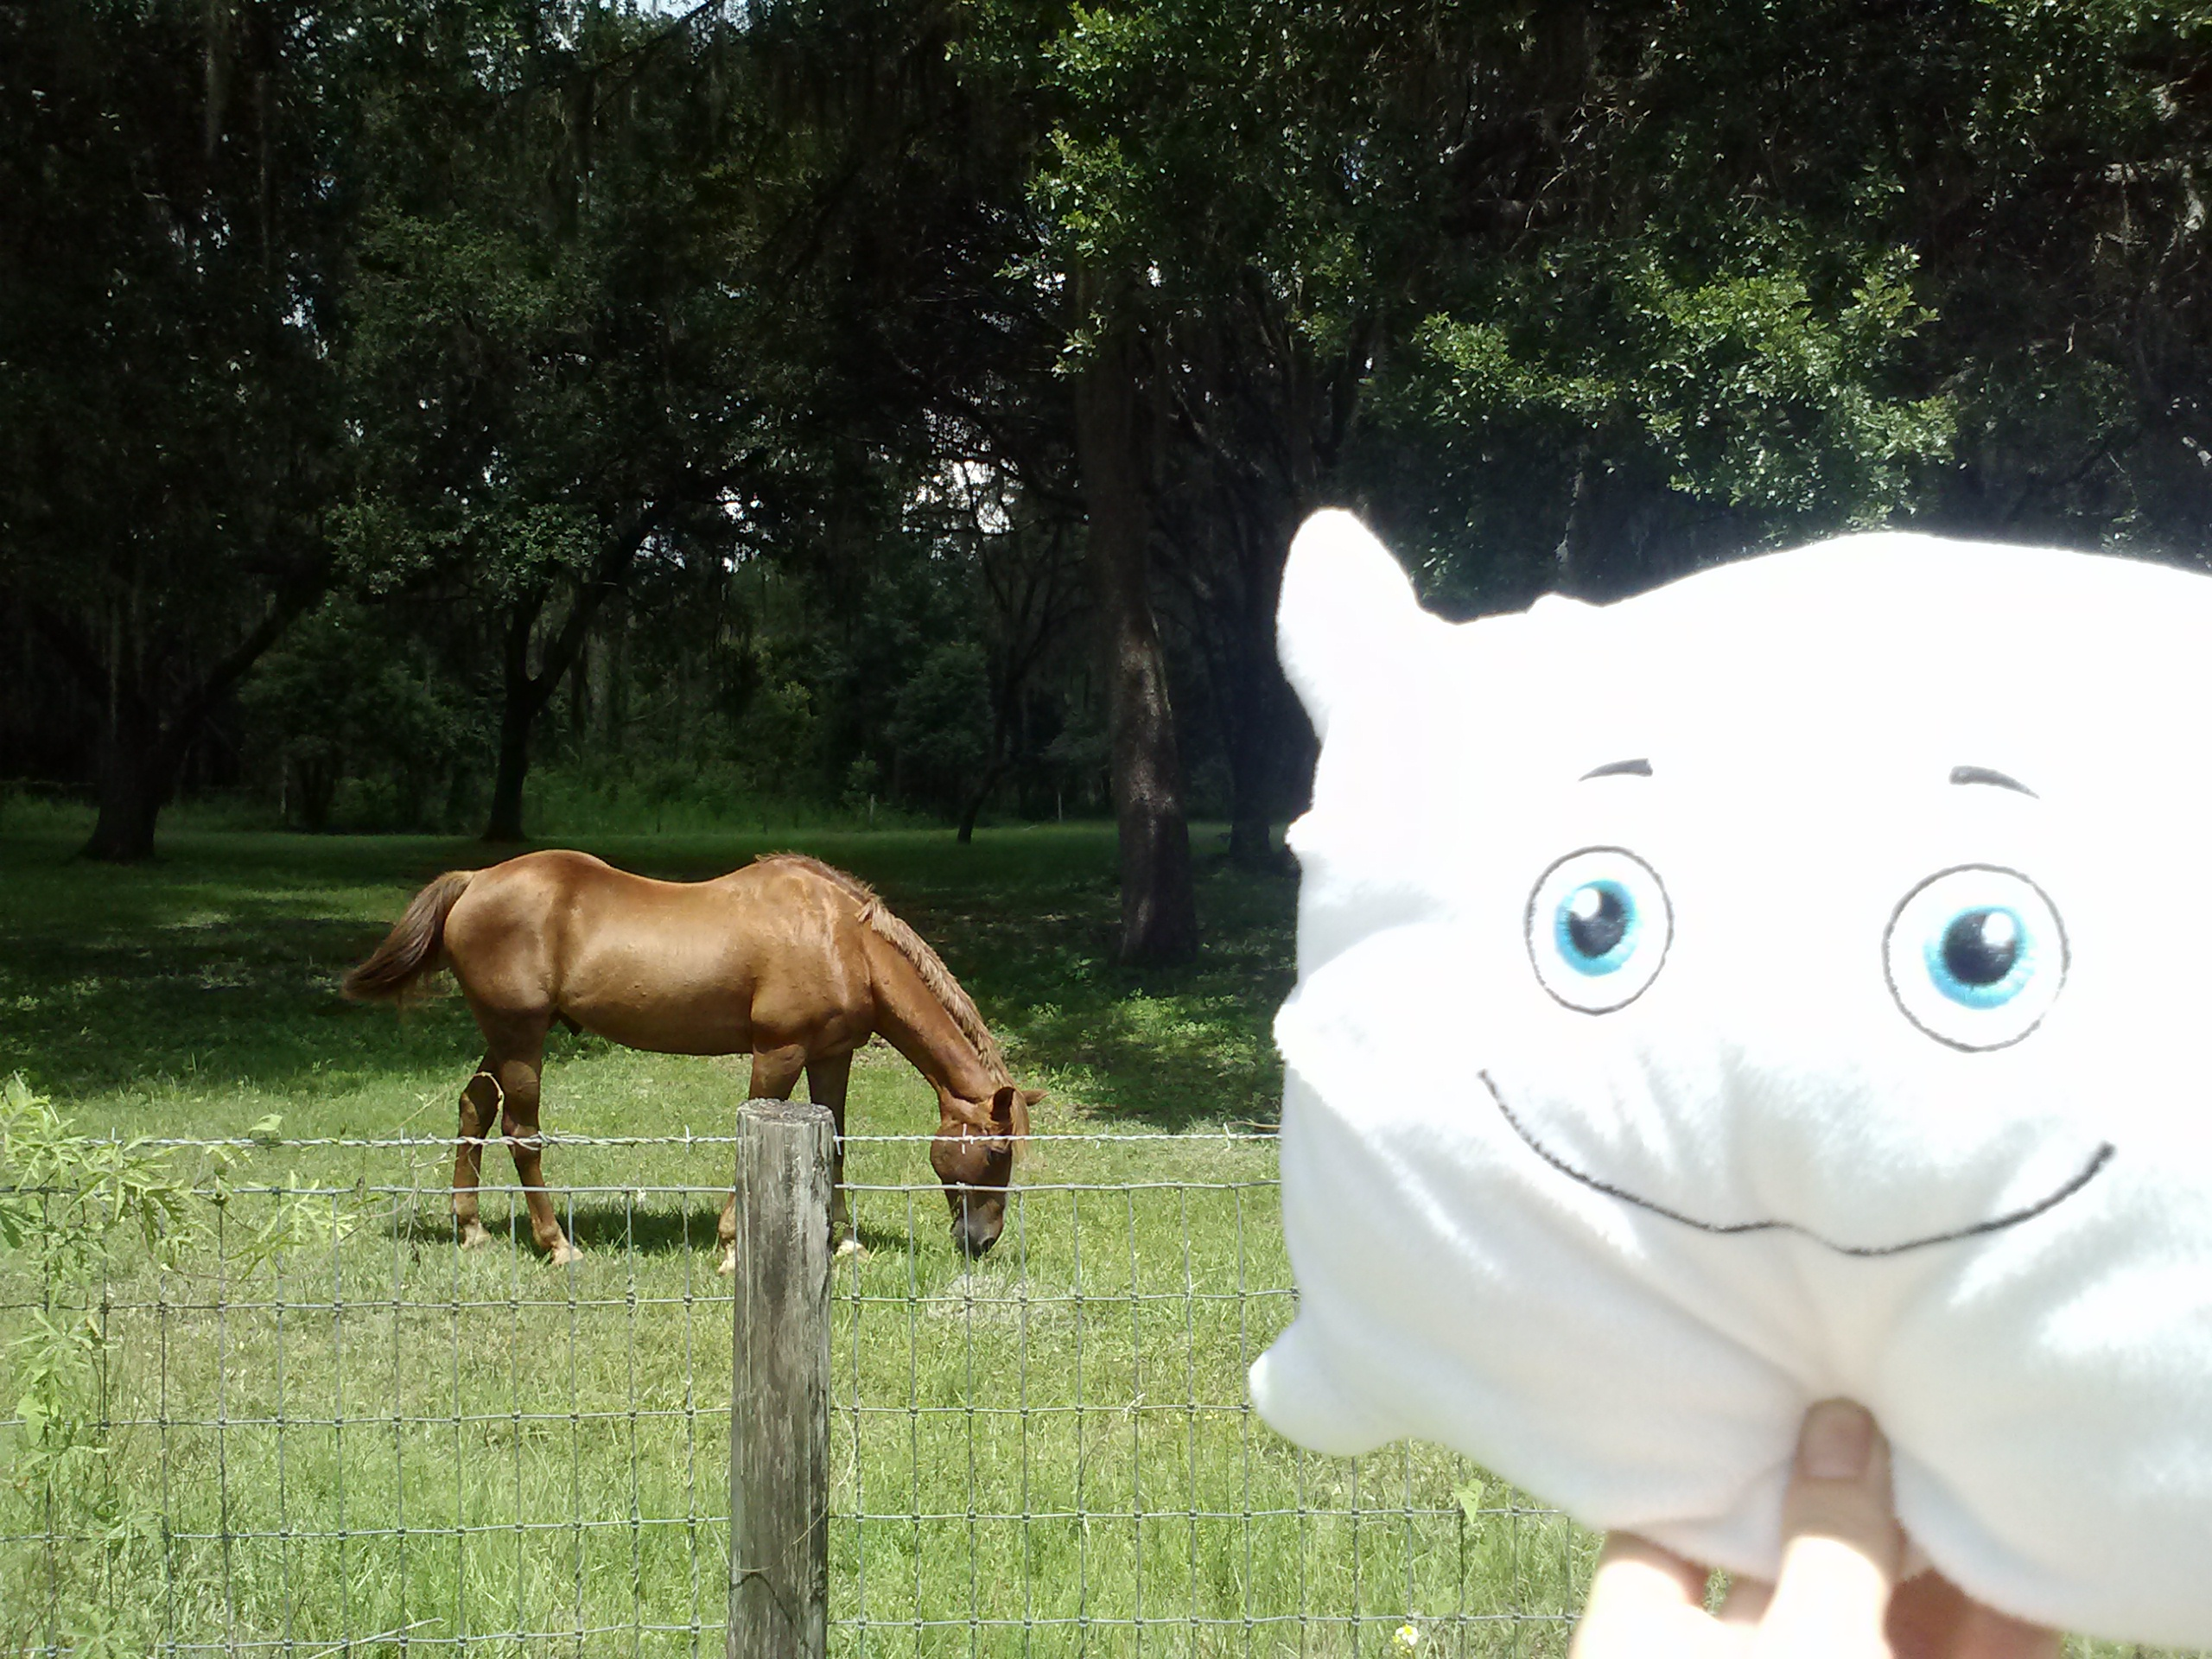 McStuffy is just horsing around